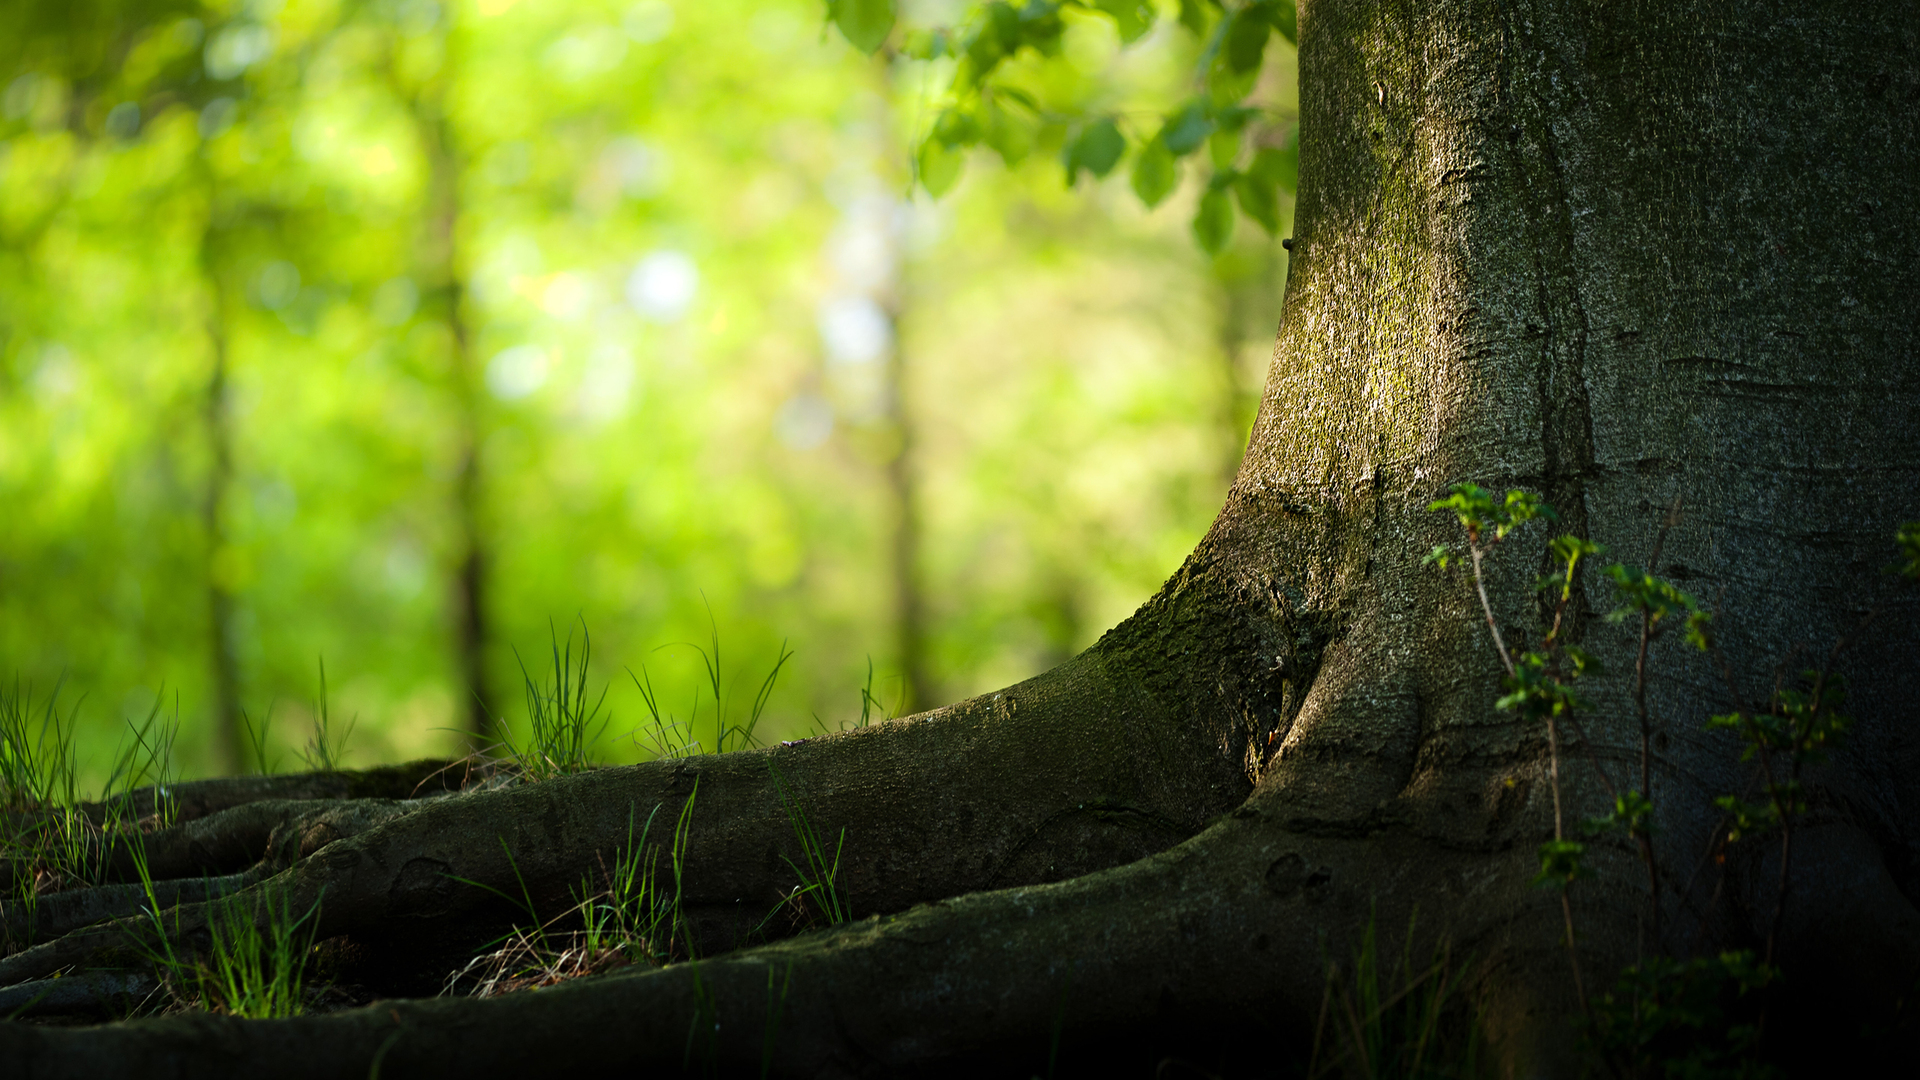 Nature Tree hd Desktop Backgrounds 1920x1080